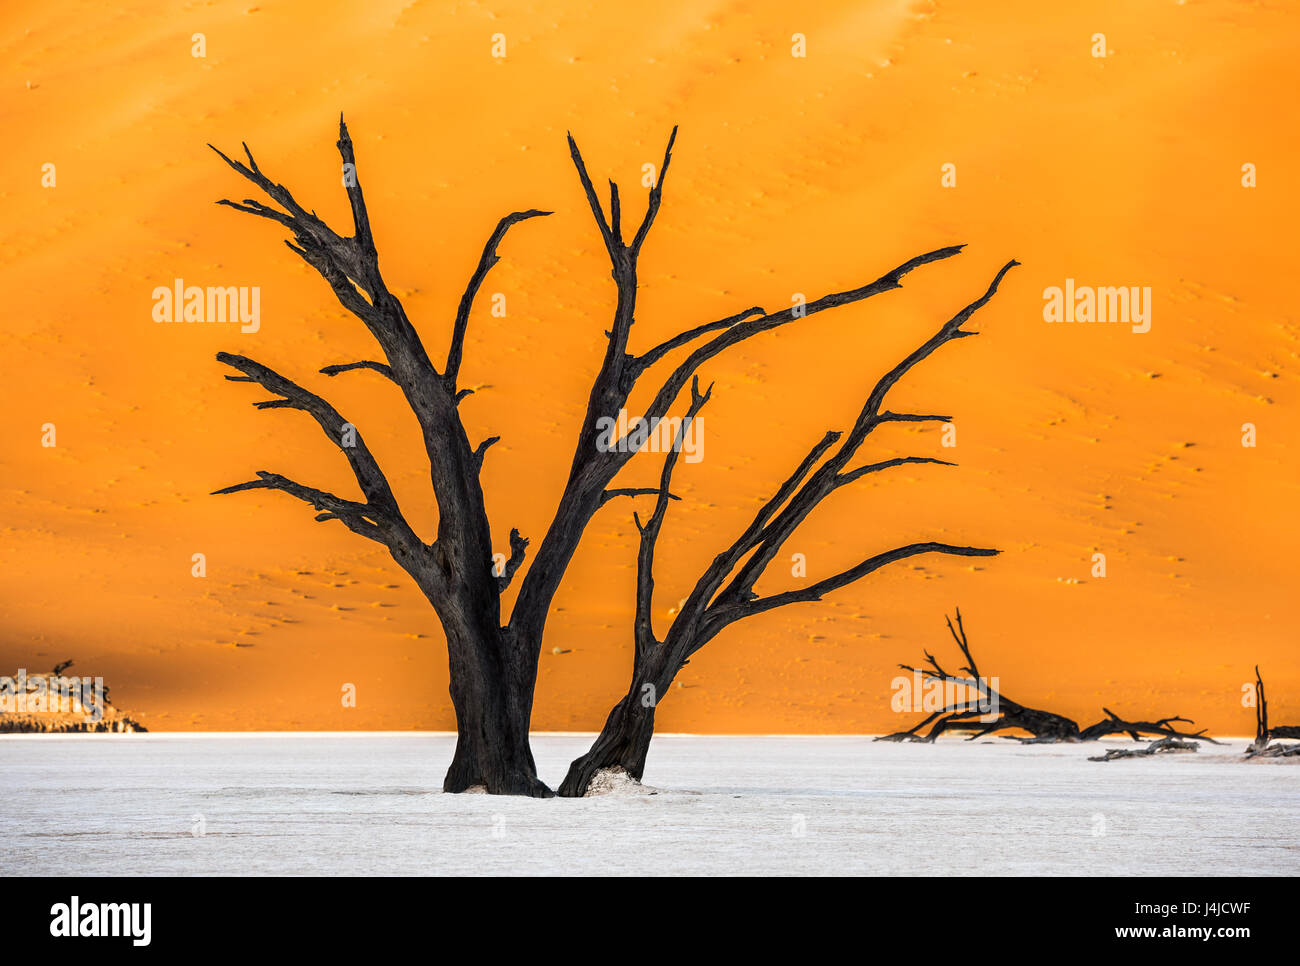 Dead Camelthorn Trees and red dunes in Deadvlei, Sossusvlei, Namib-Naukluft National Park, Namibia - Stock Image